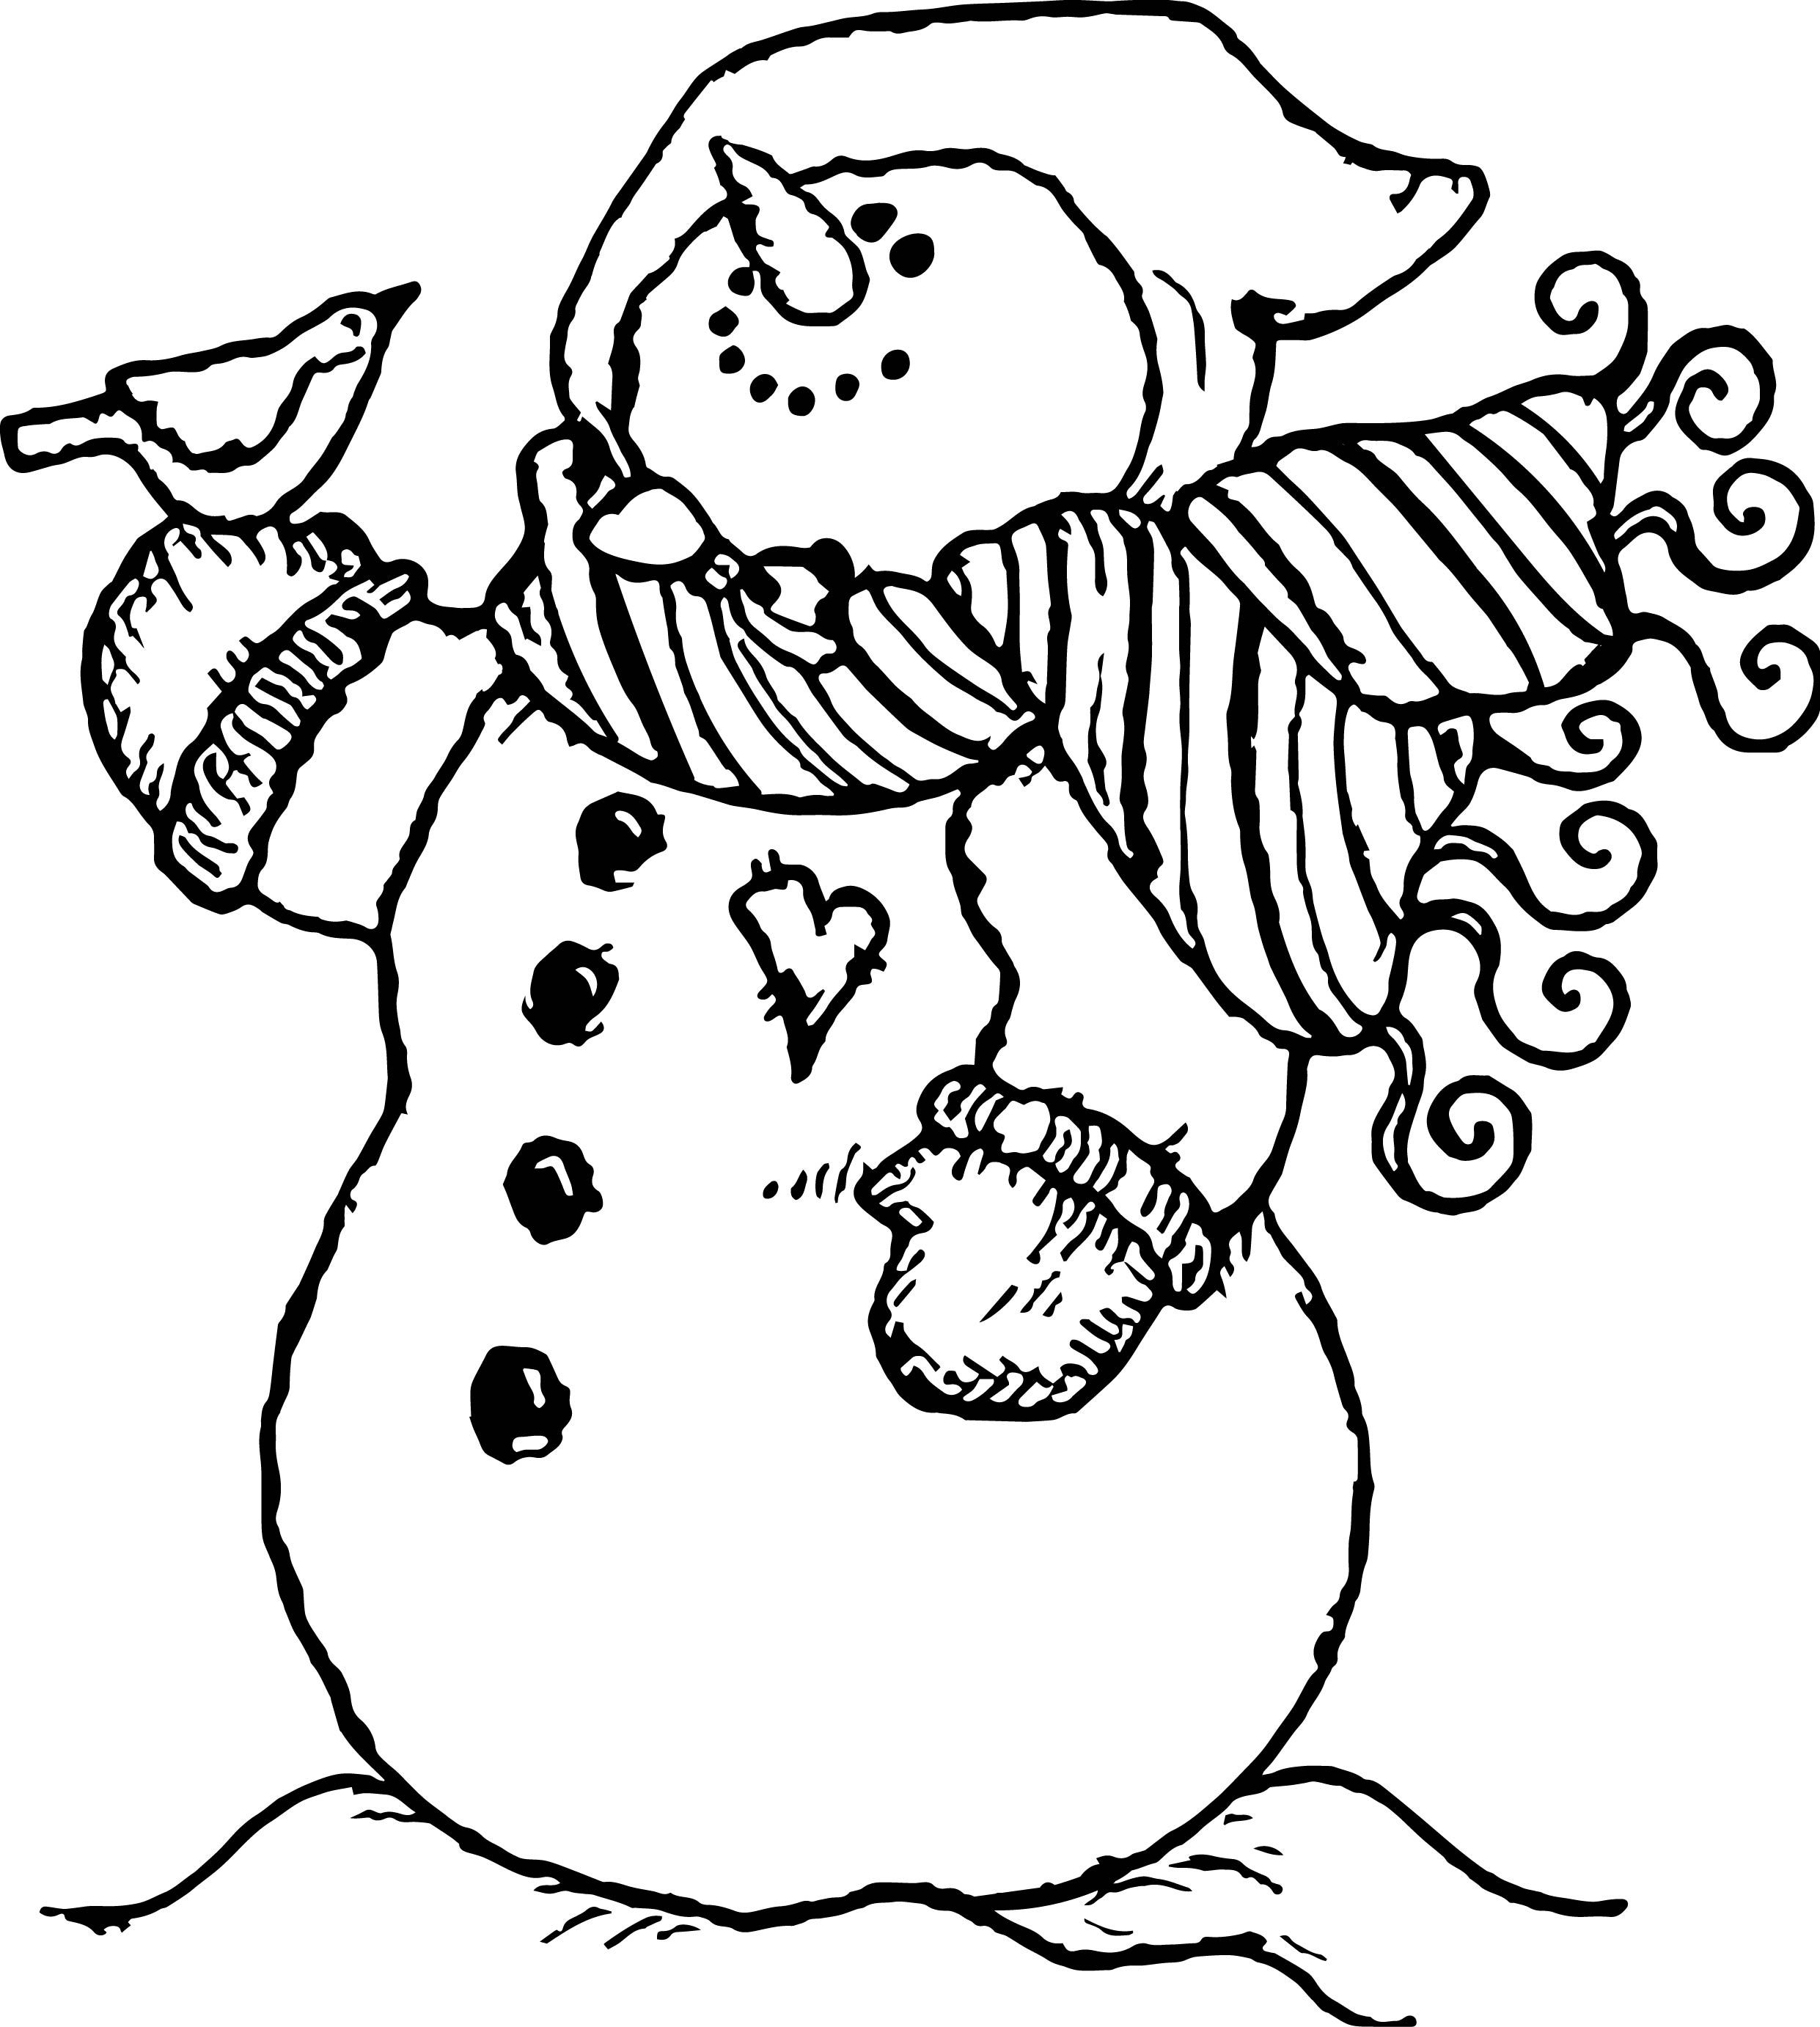 Cute Snowman Coloring Pages Ideas For Toddlers | Snowman ...